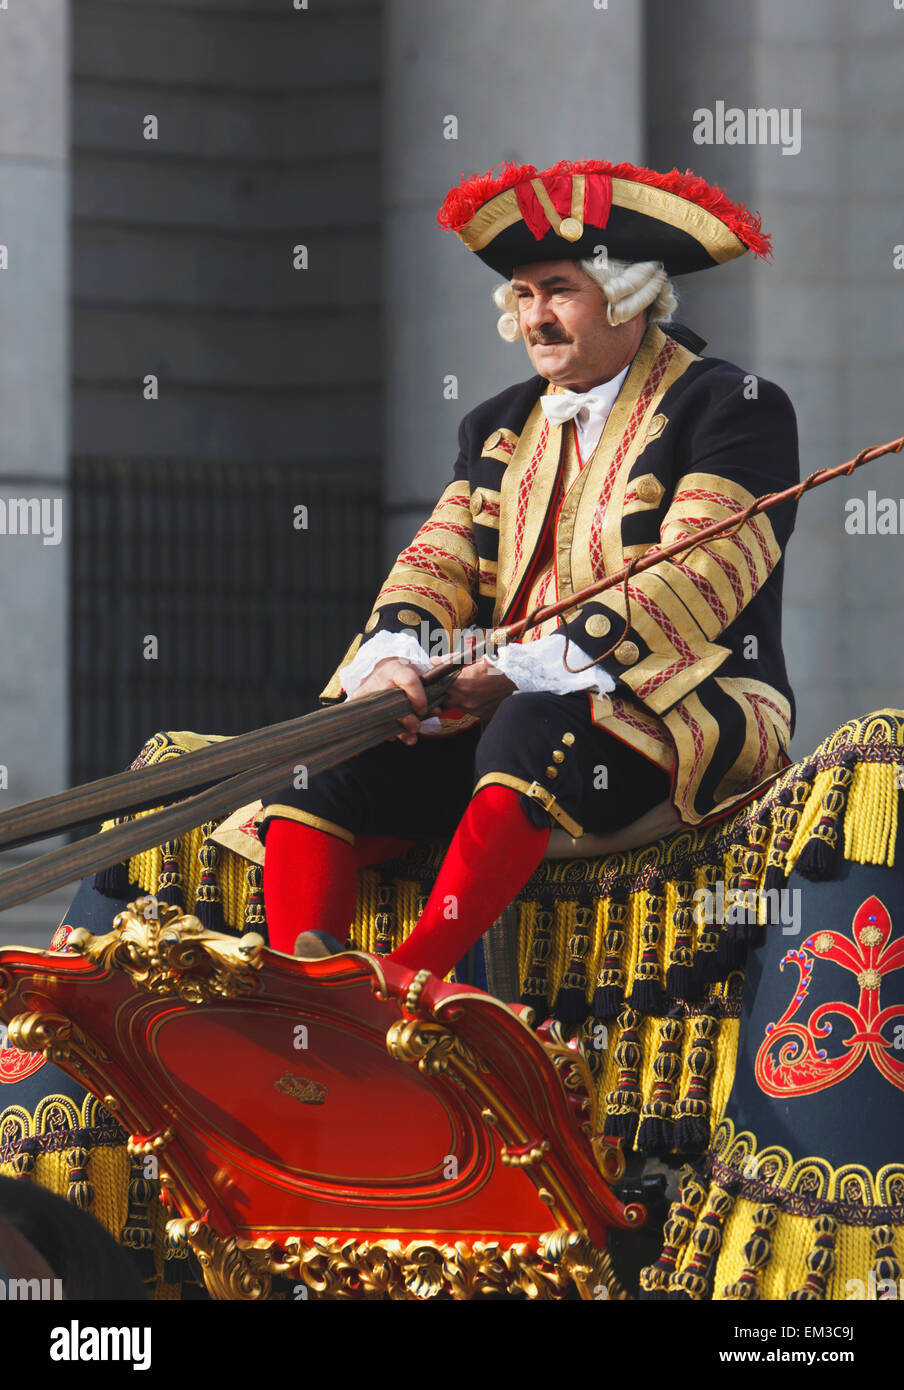 Coachman Of The Royal Palace; Madrid Spain - Stock Image